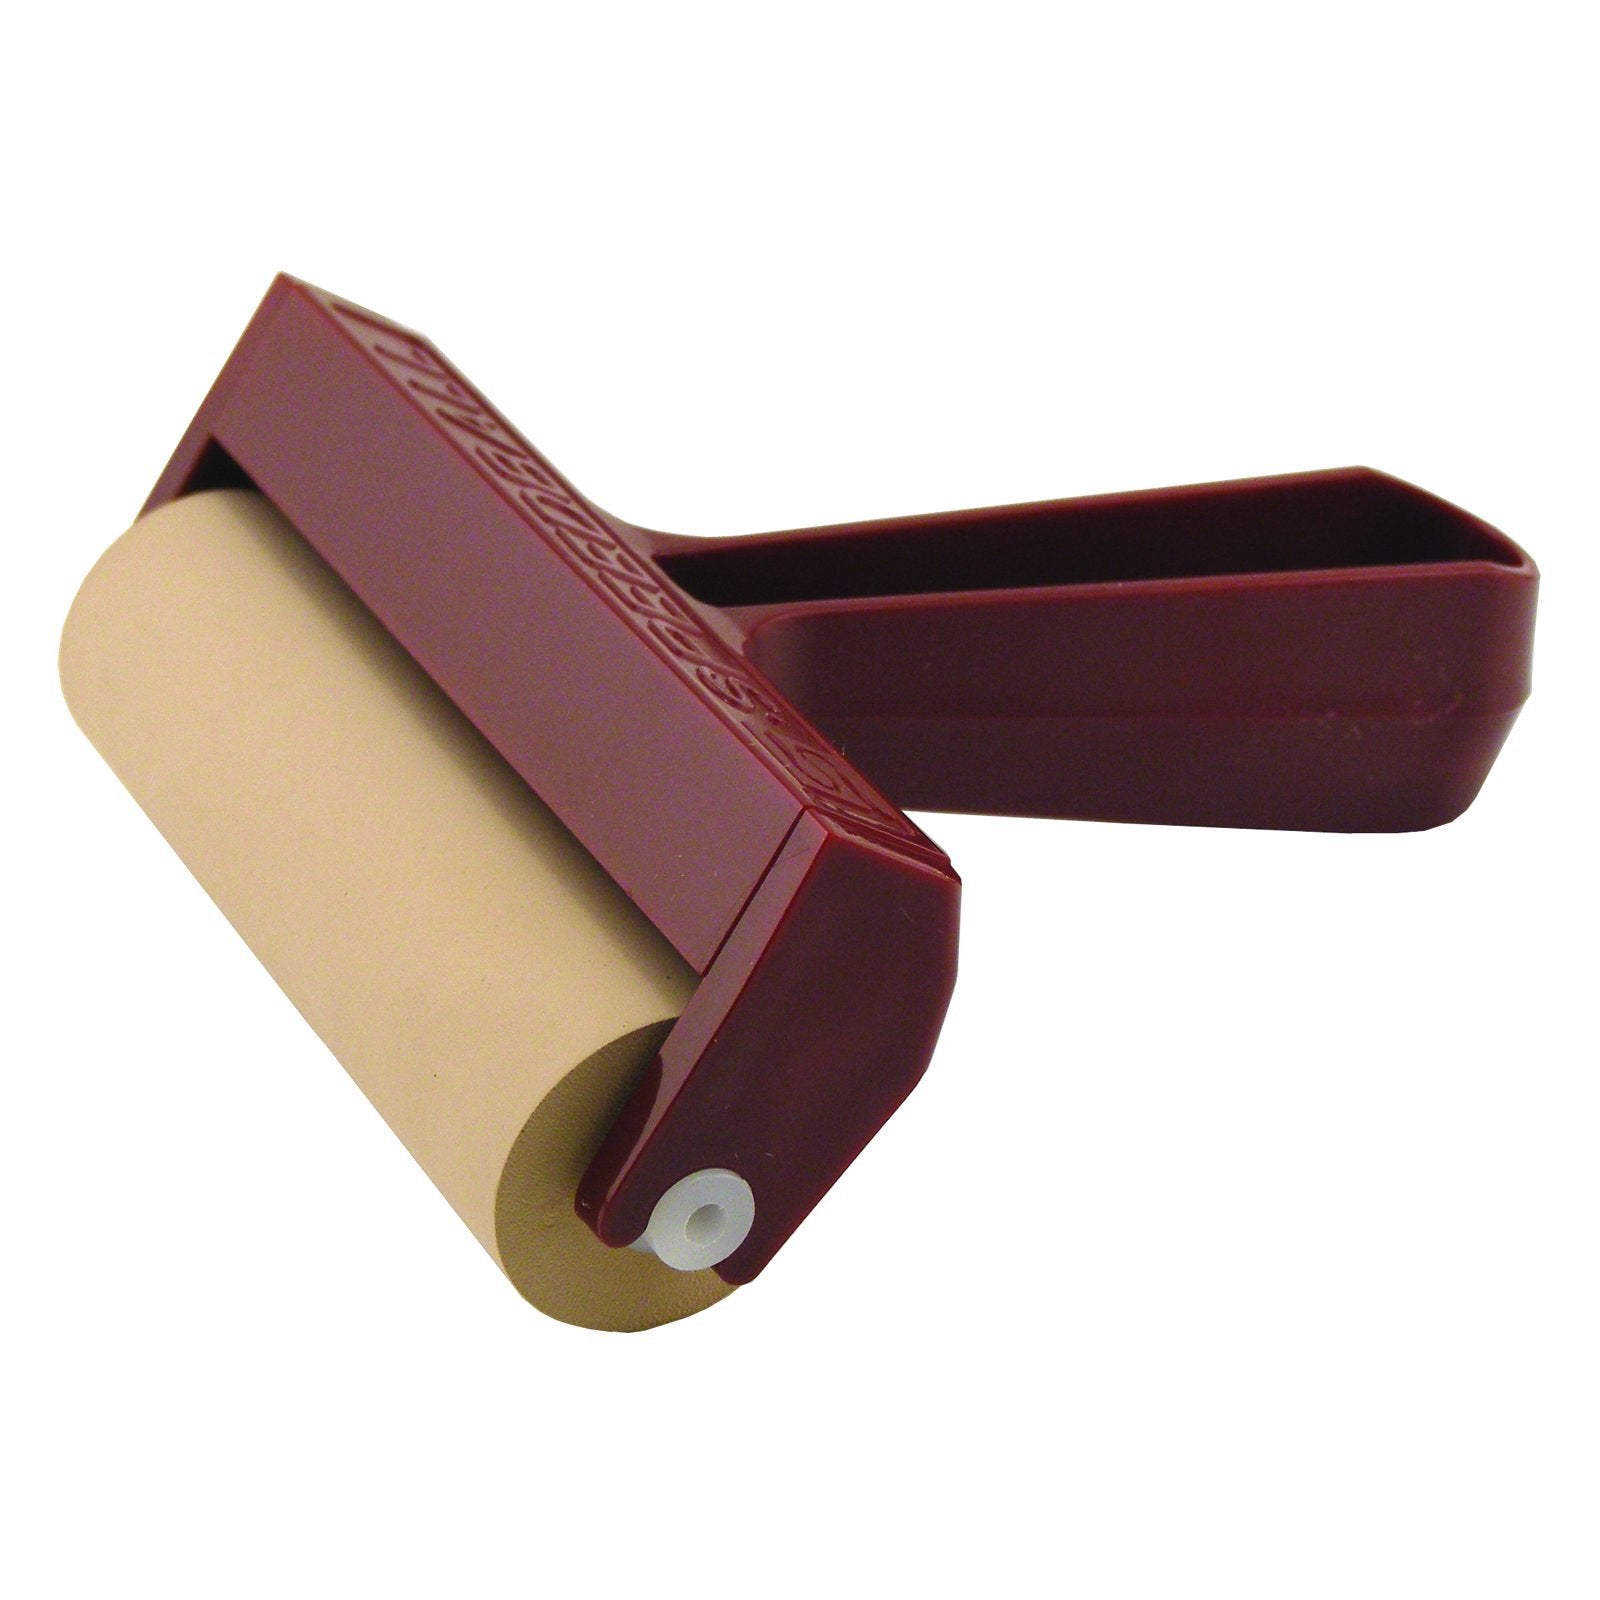 "Speedball 4"" Brayer with Pop-In Roller, Soft Rubber"